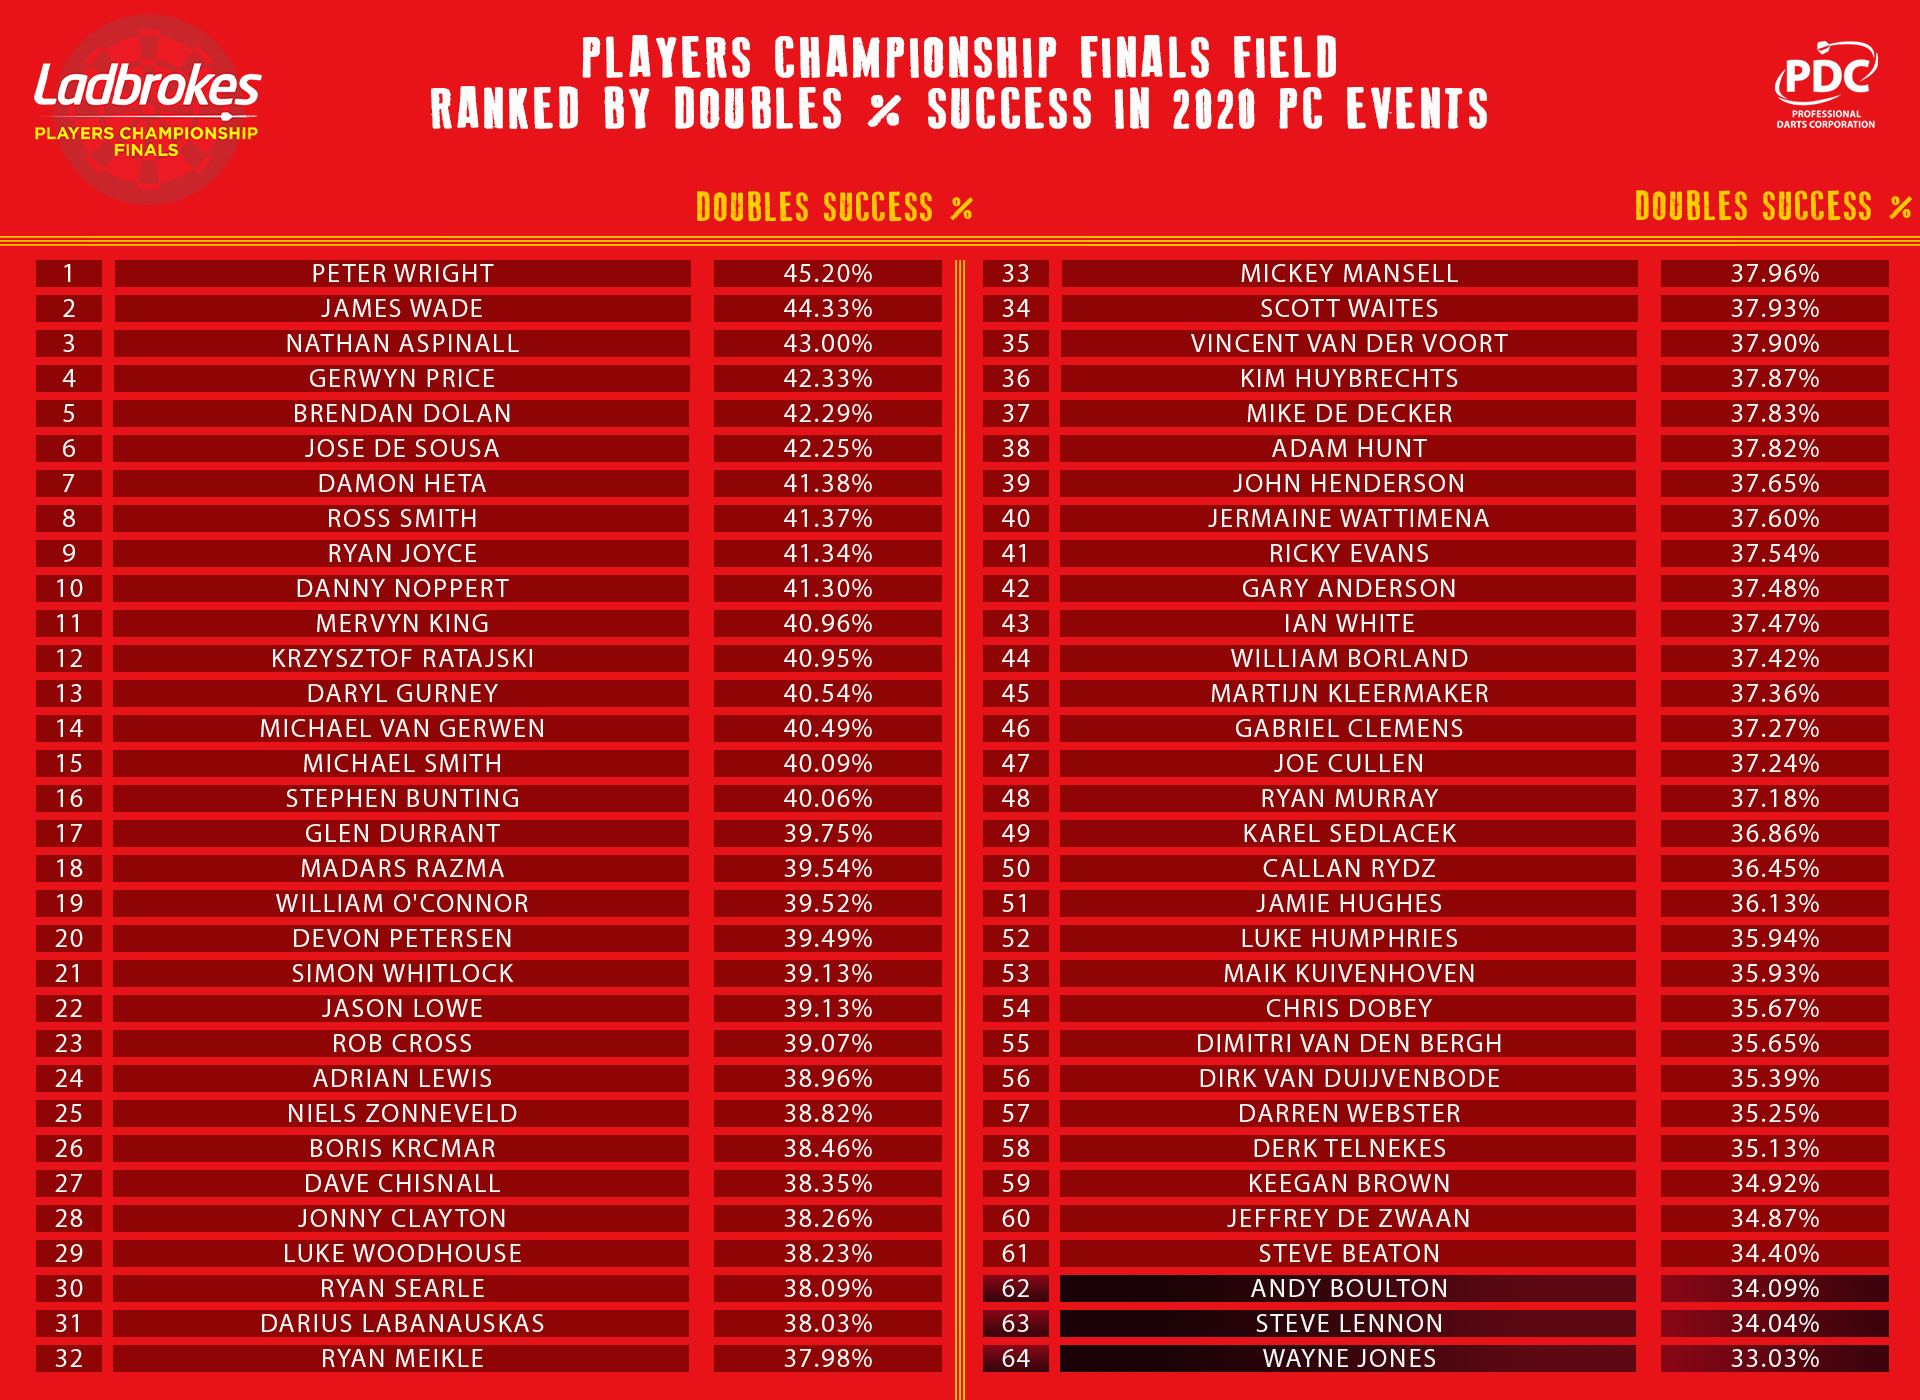 Players Championship Finals field stats